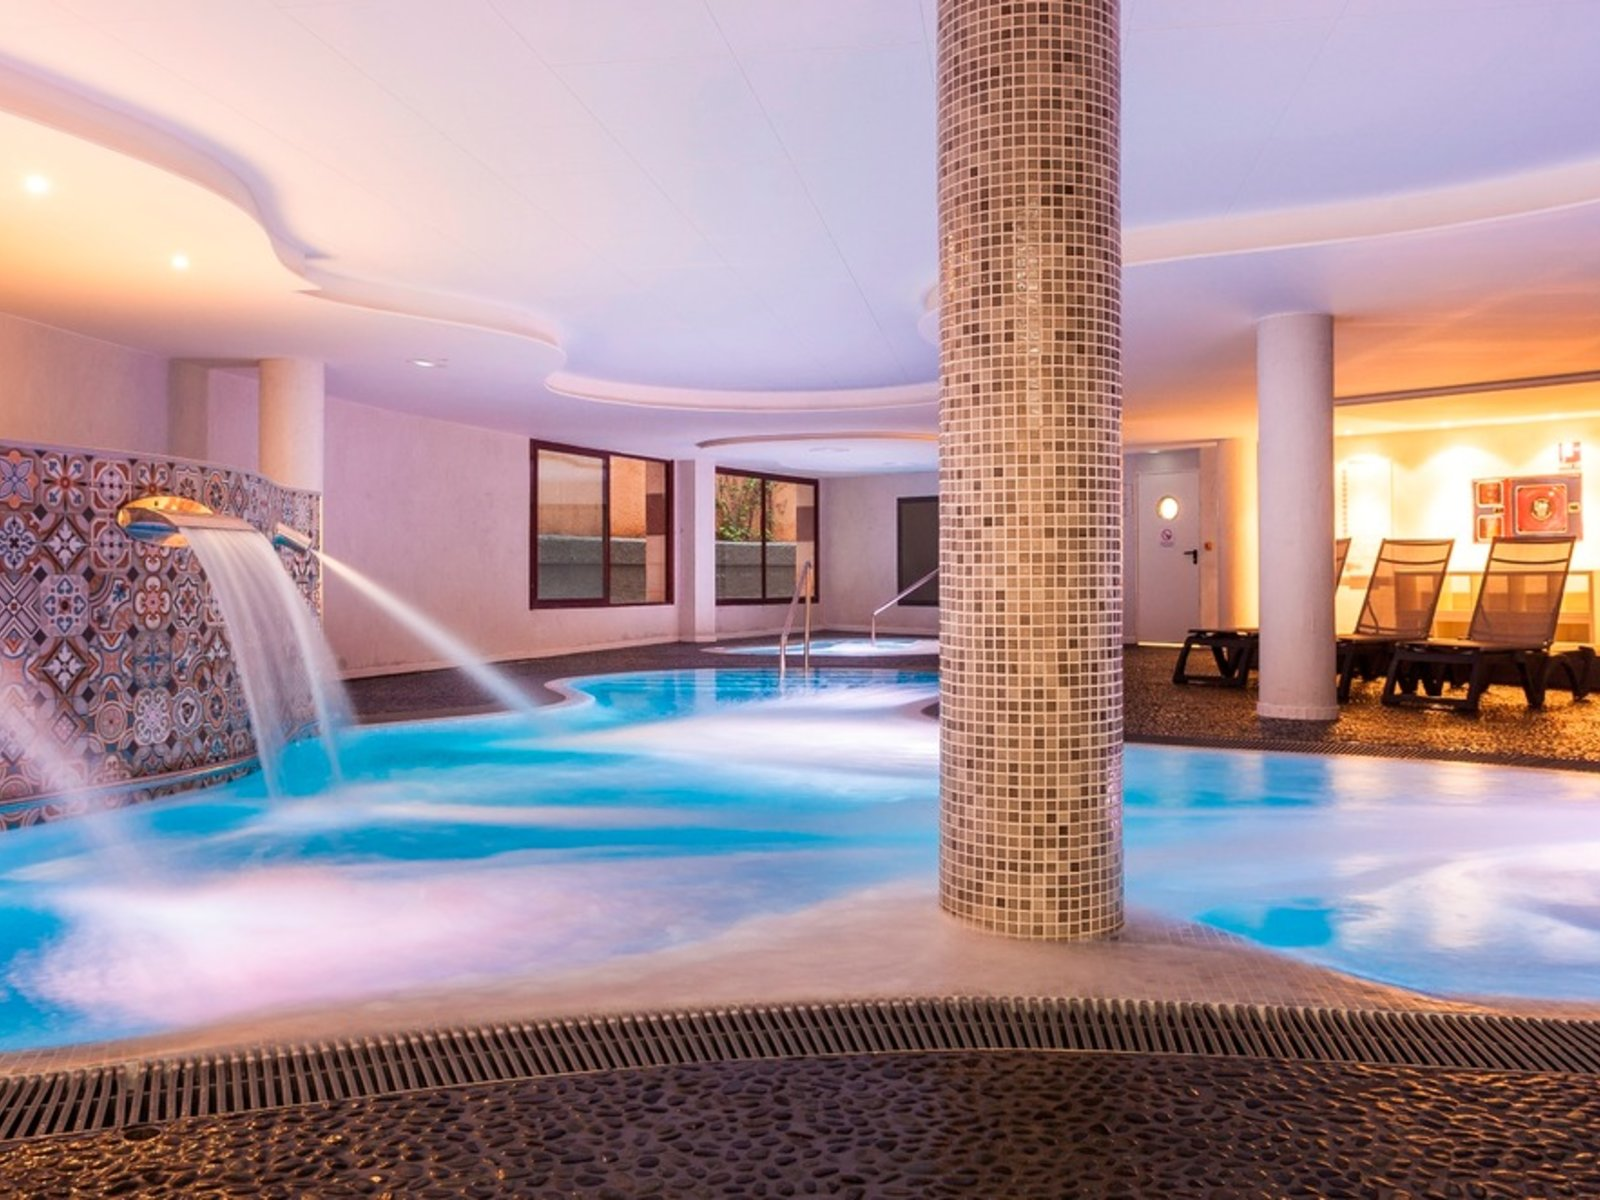 Spa Indoorpool Area A